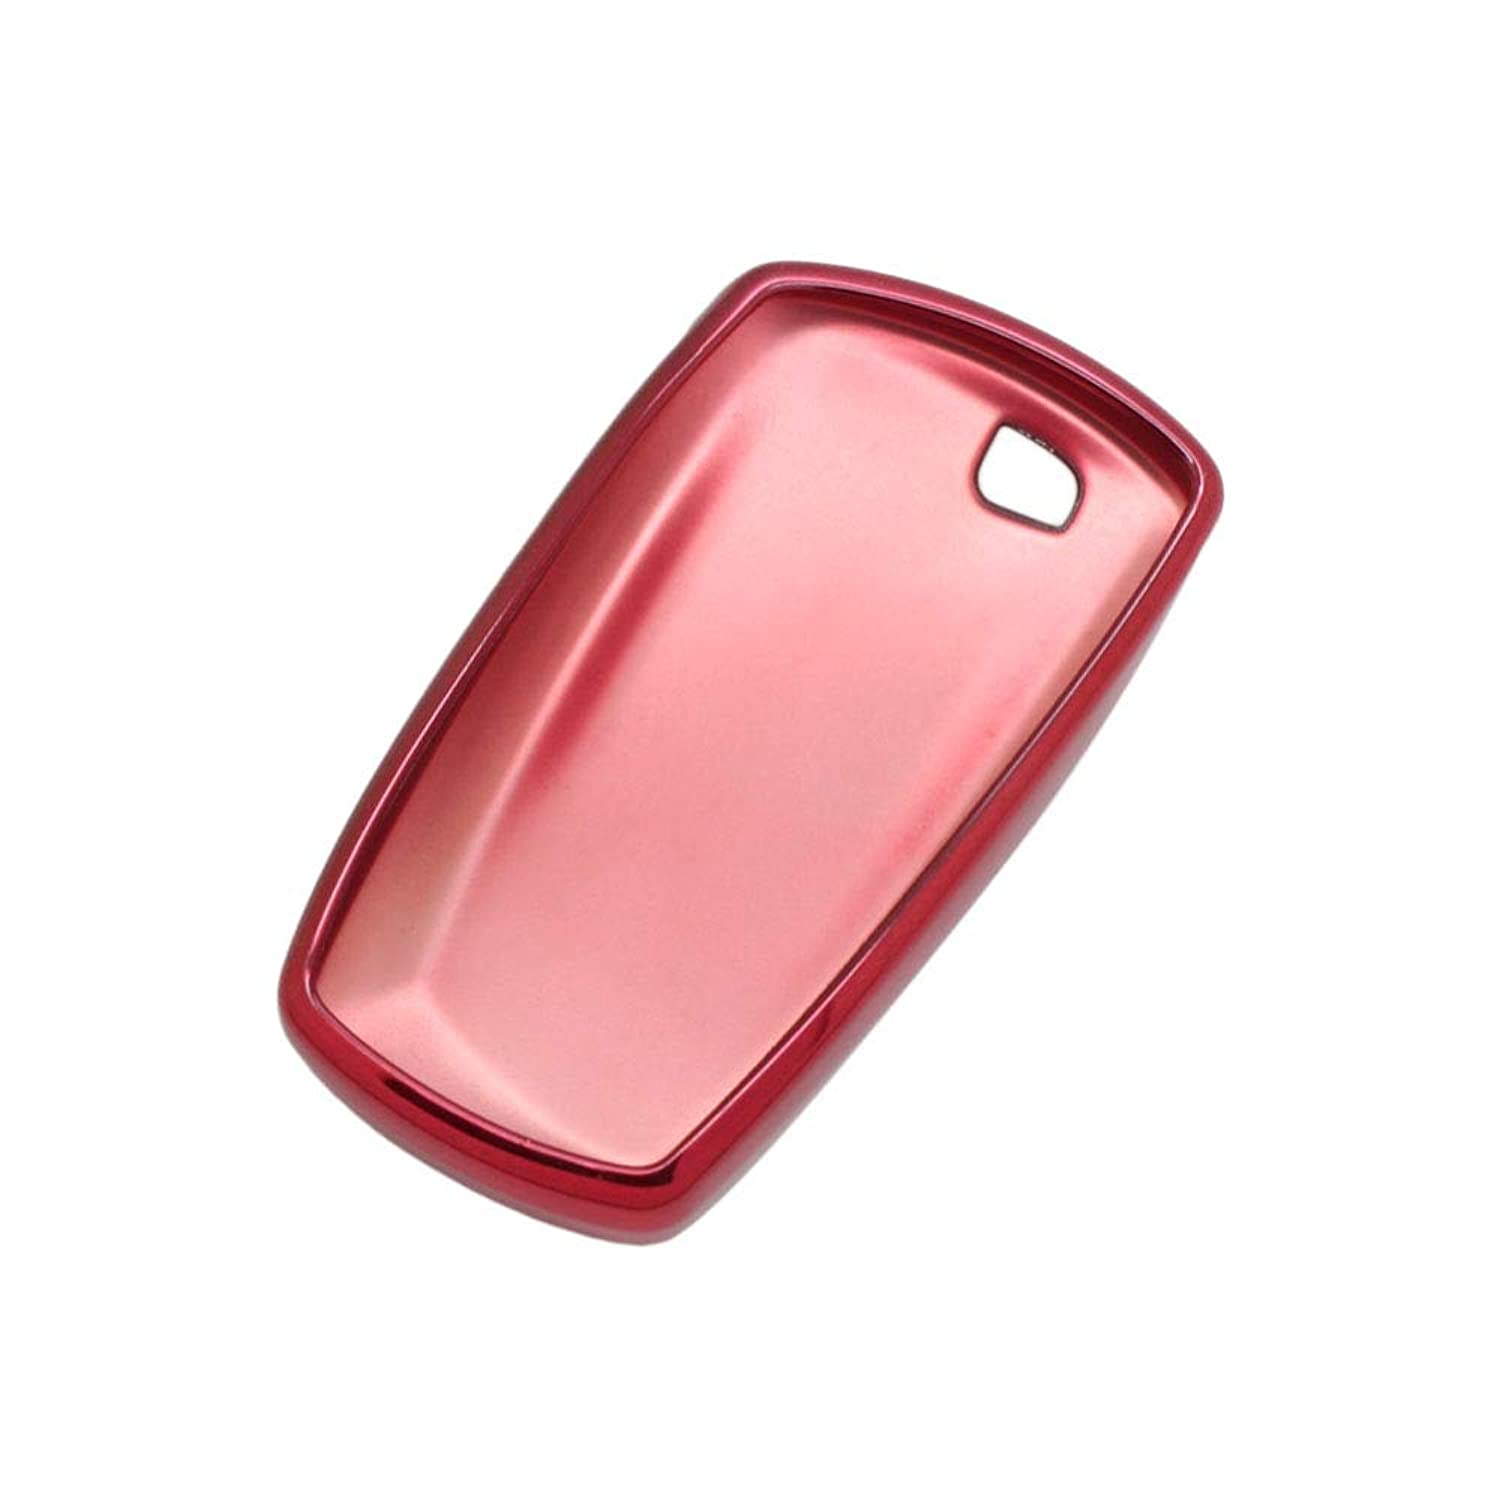 SEGADEN TPU Soft Case Shell Cover Protector Holder fit for BMW Smart Remote Key Fob 3 4 Button SV7901 Red